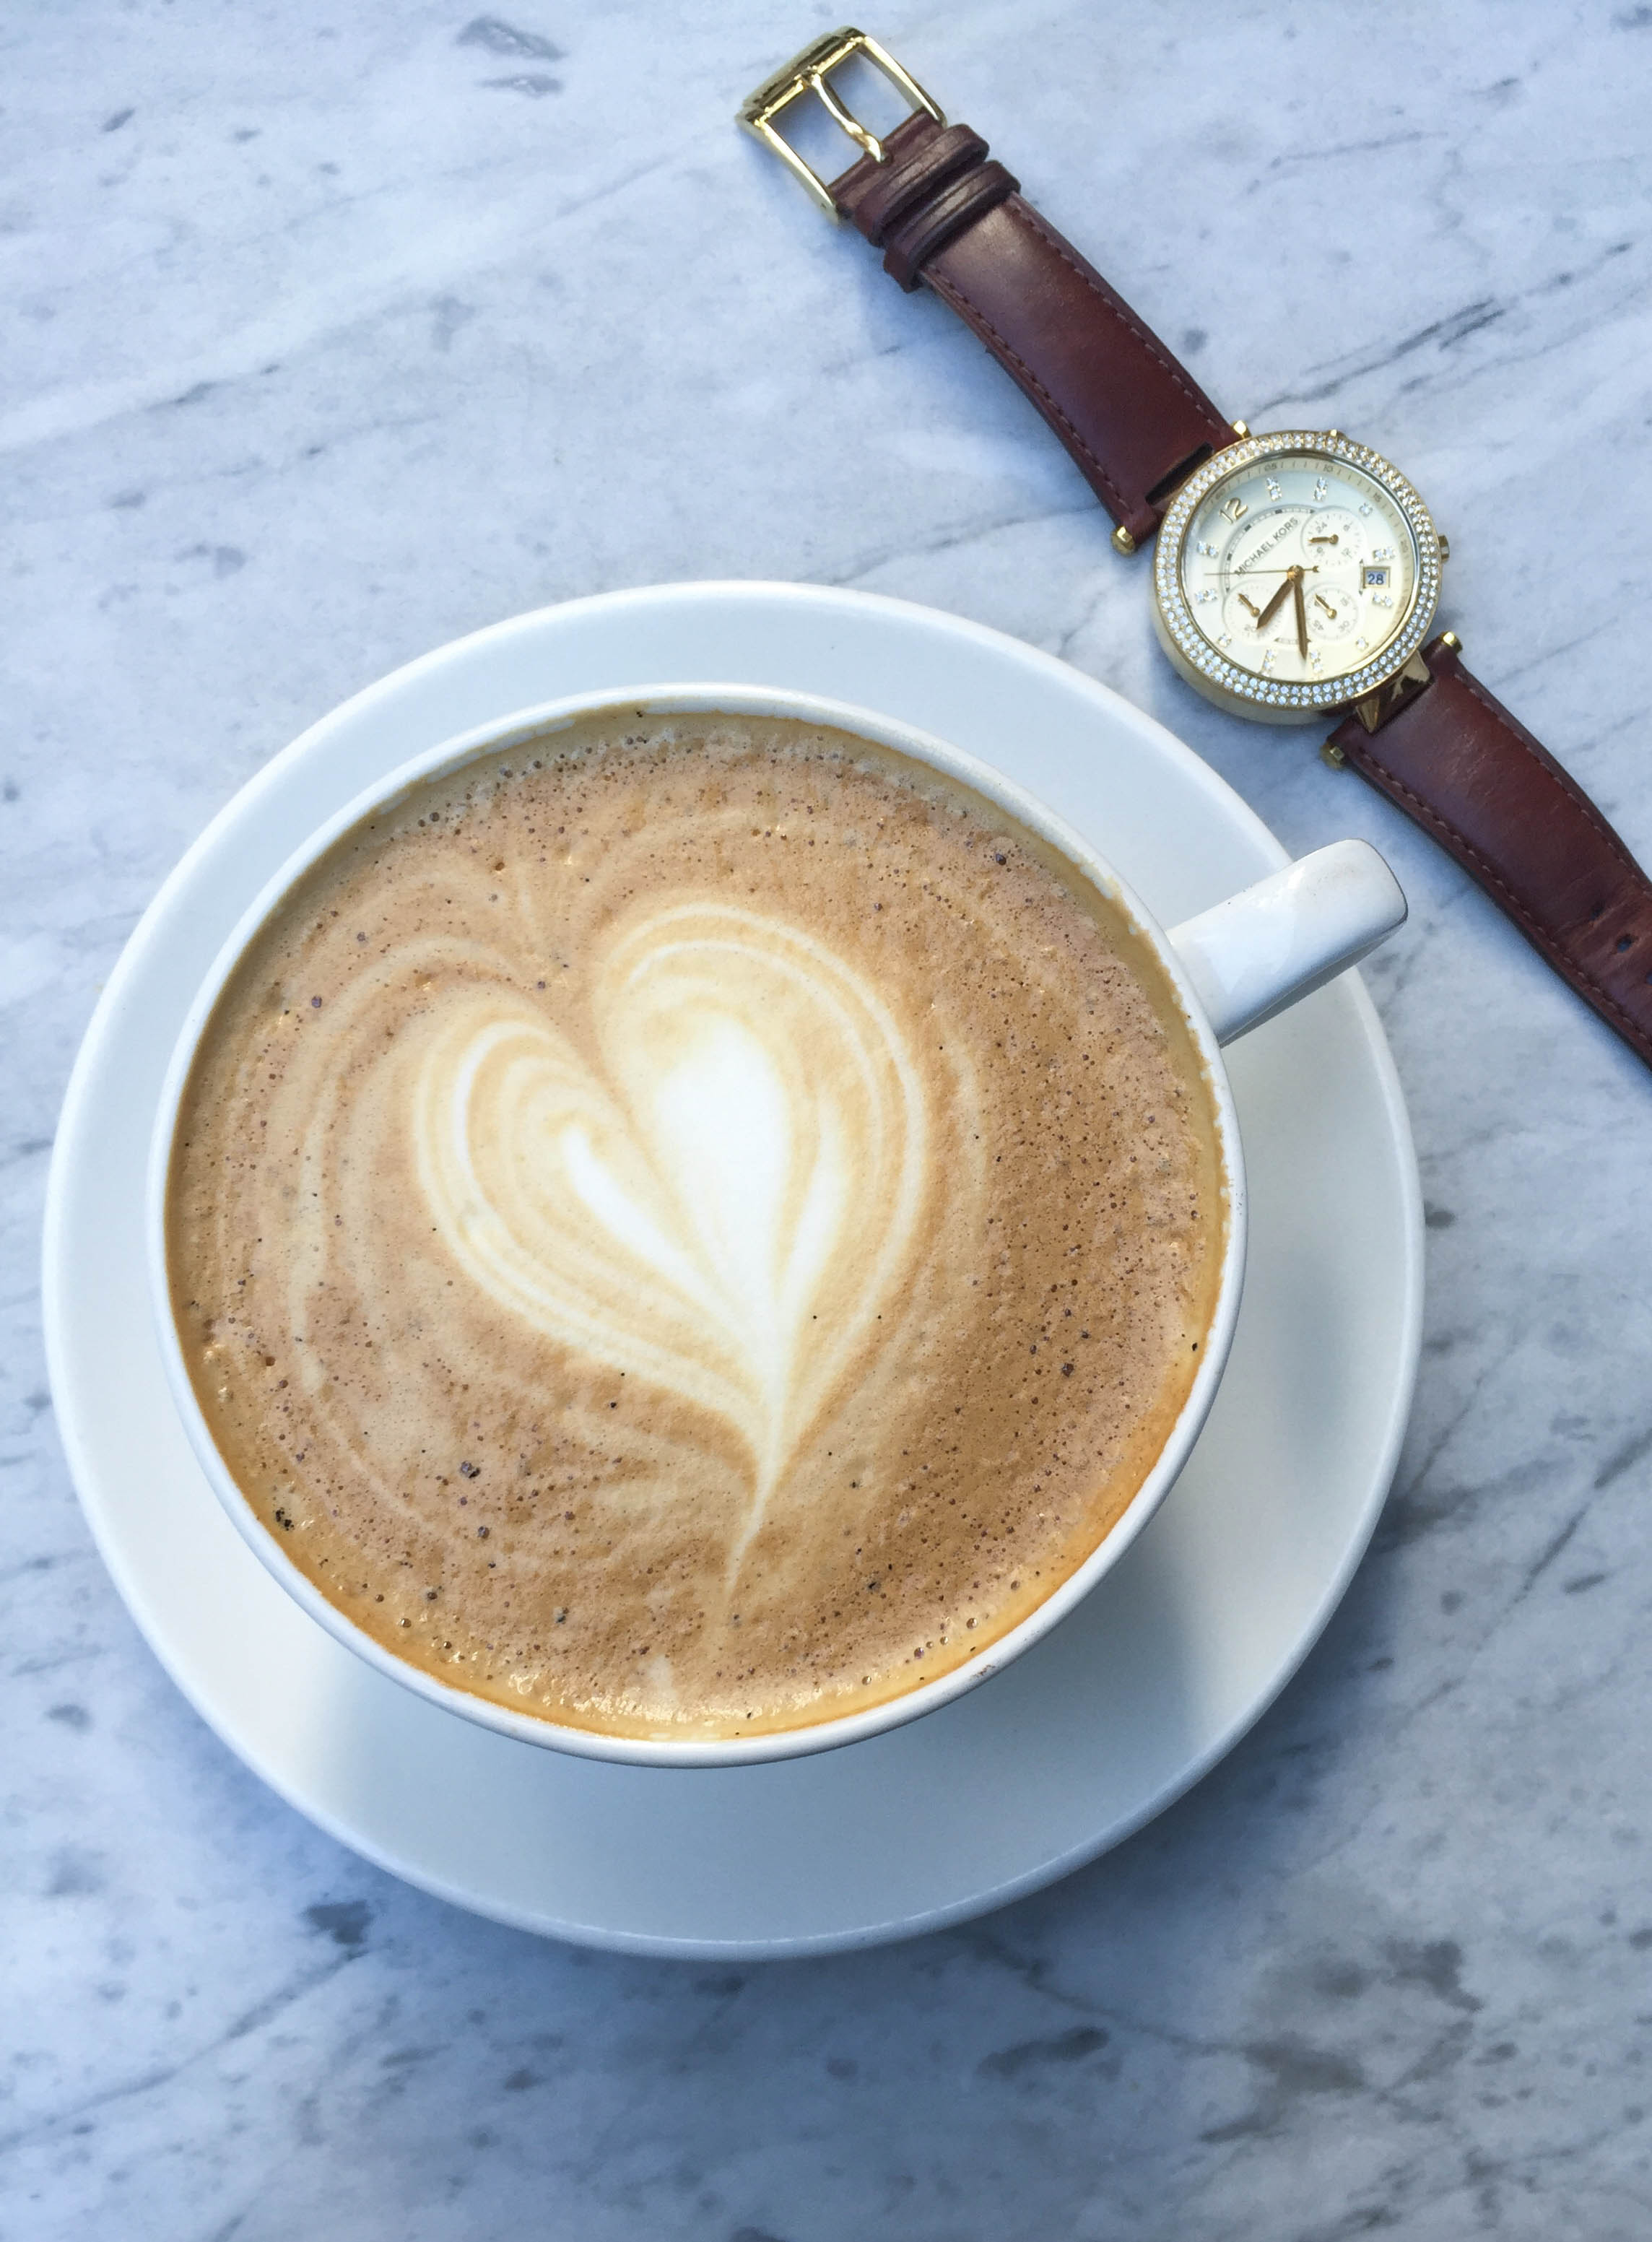 Sugar and Stamps: Dineen Coffee in Toronto